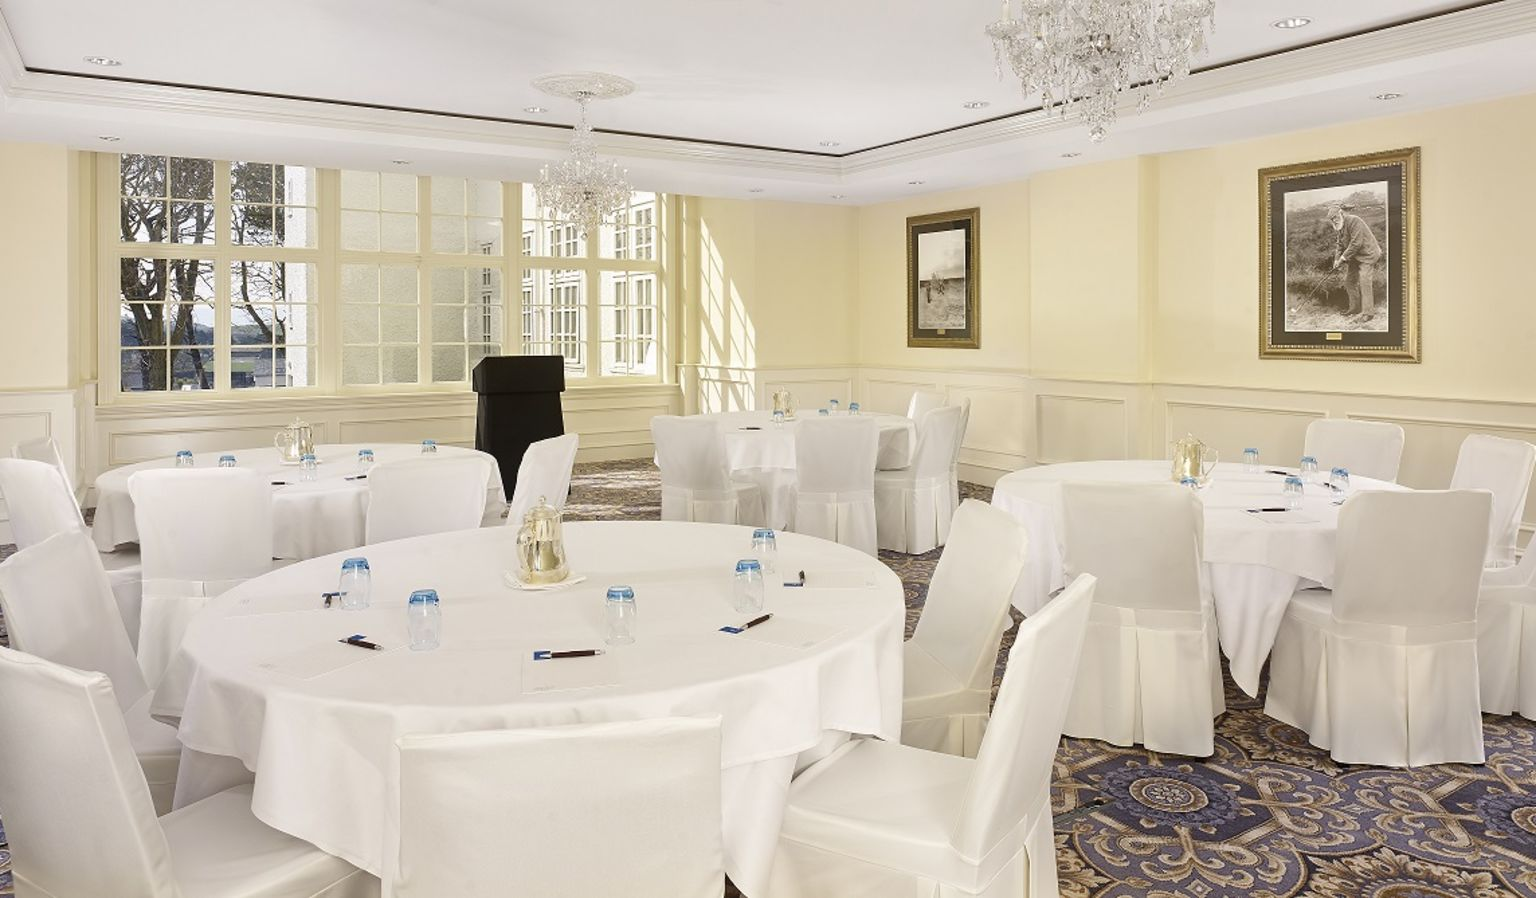 Meeting Room with Podium and Tables